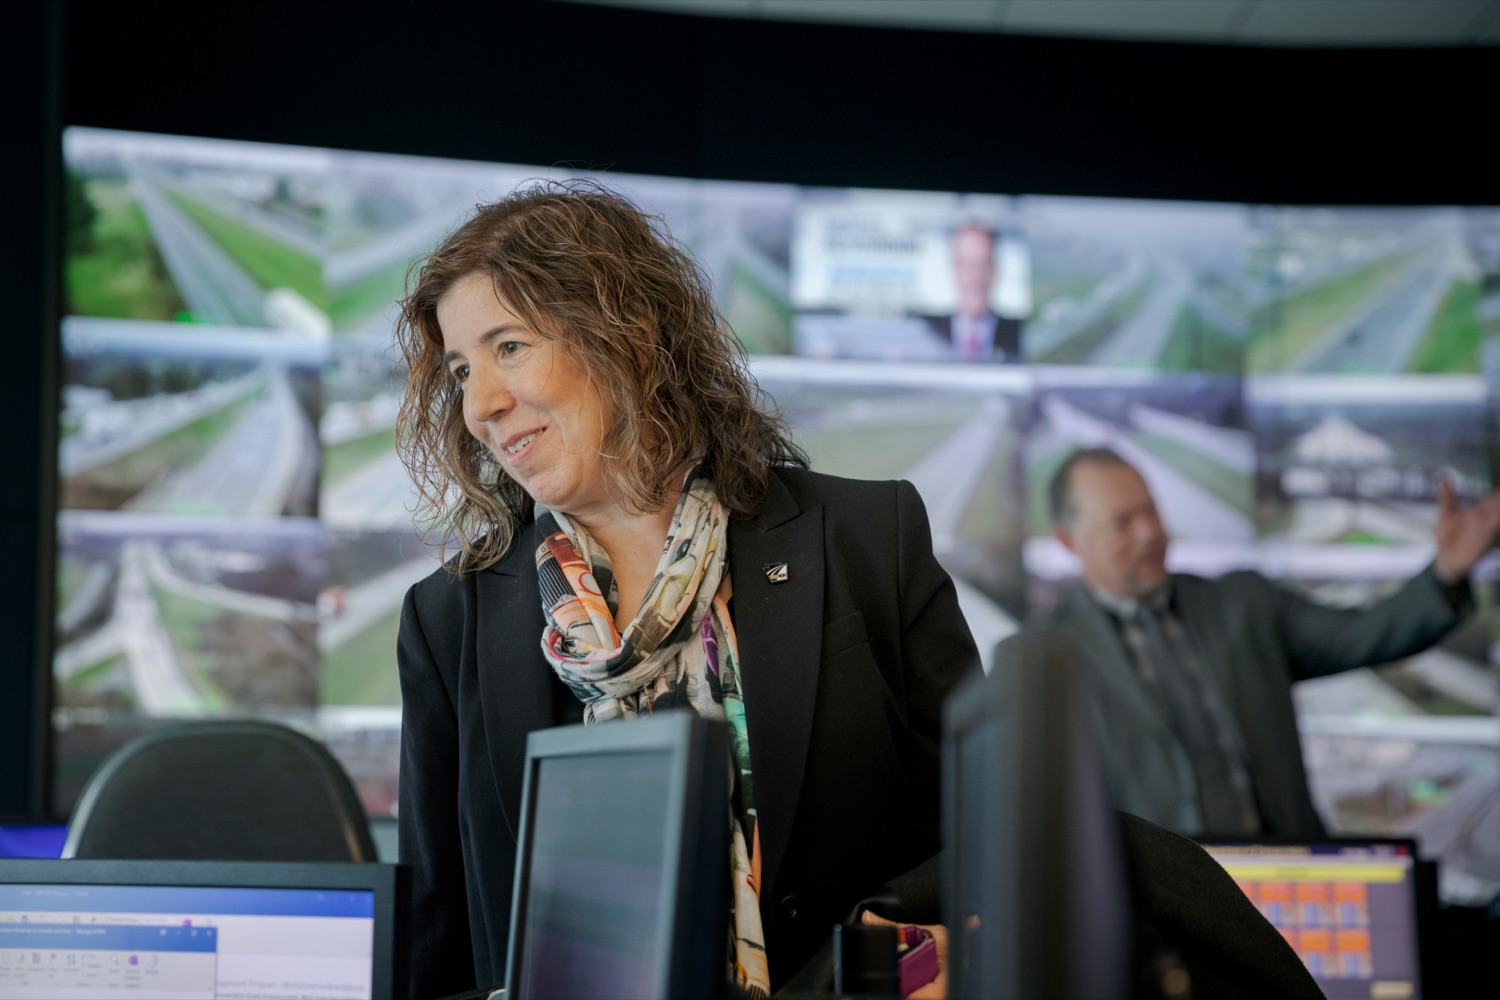 "<a href=""http://filesource.abacast.com/commonwealthofpa/photo/17571_PSP_Thanksgiving_NK_006.JPG"" target=""_blank"">⇣ Download Photo<br></a>PennDOT Secretary Leslie S. Richards smiles inside the PennDOT Regional Traffic Management Center at the Pennsylvania Emergency Management Agency (PEMA) on Monday, November 18, 2019."